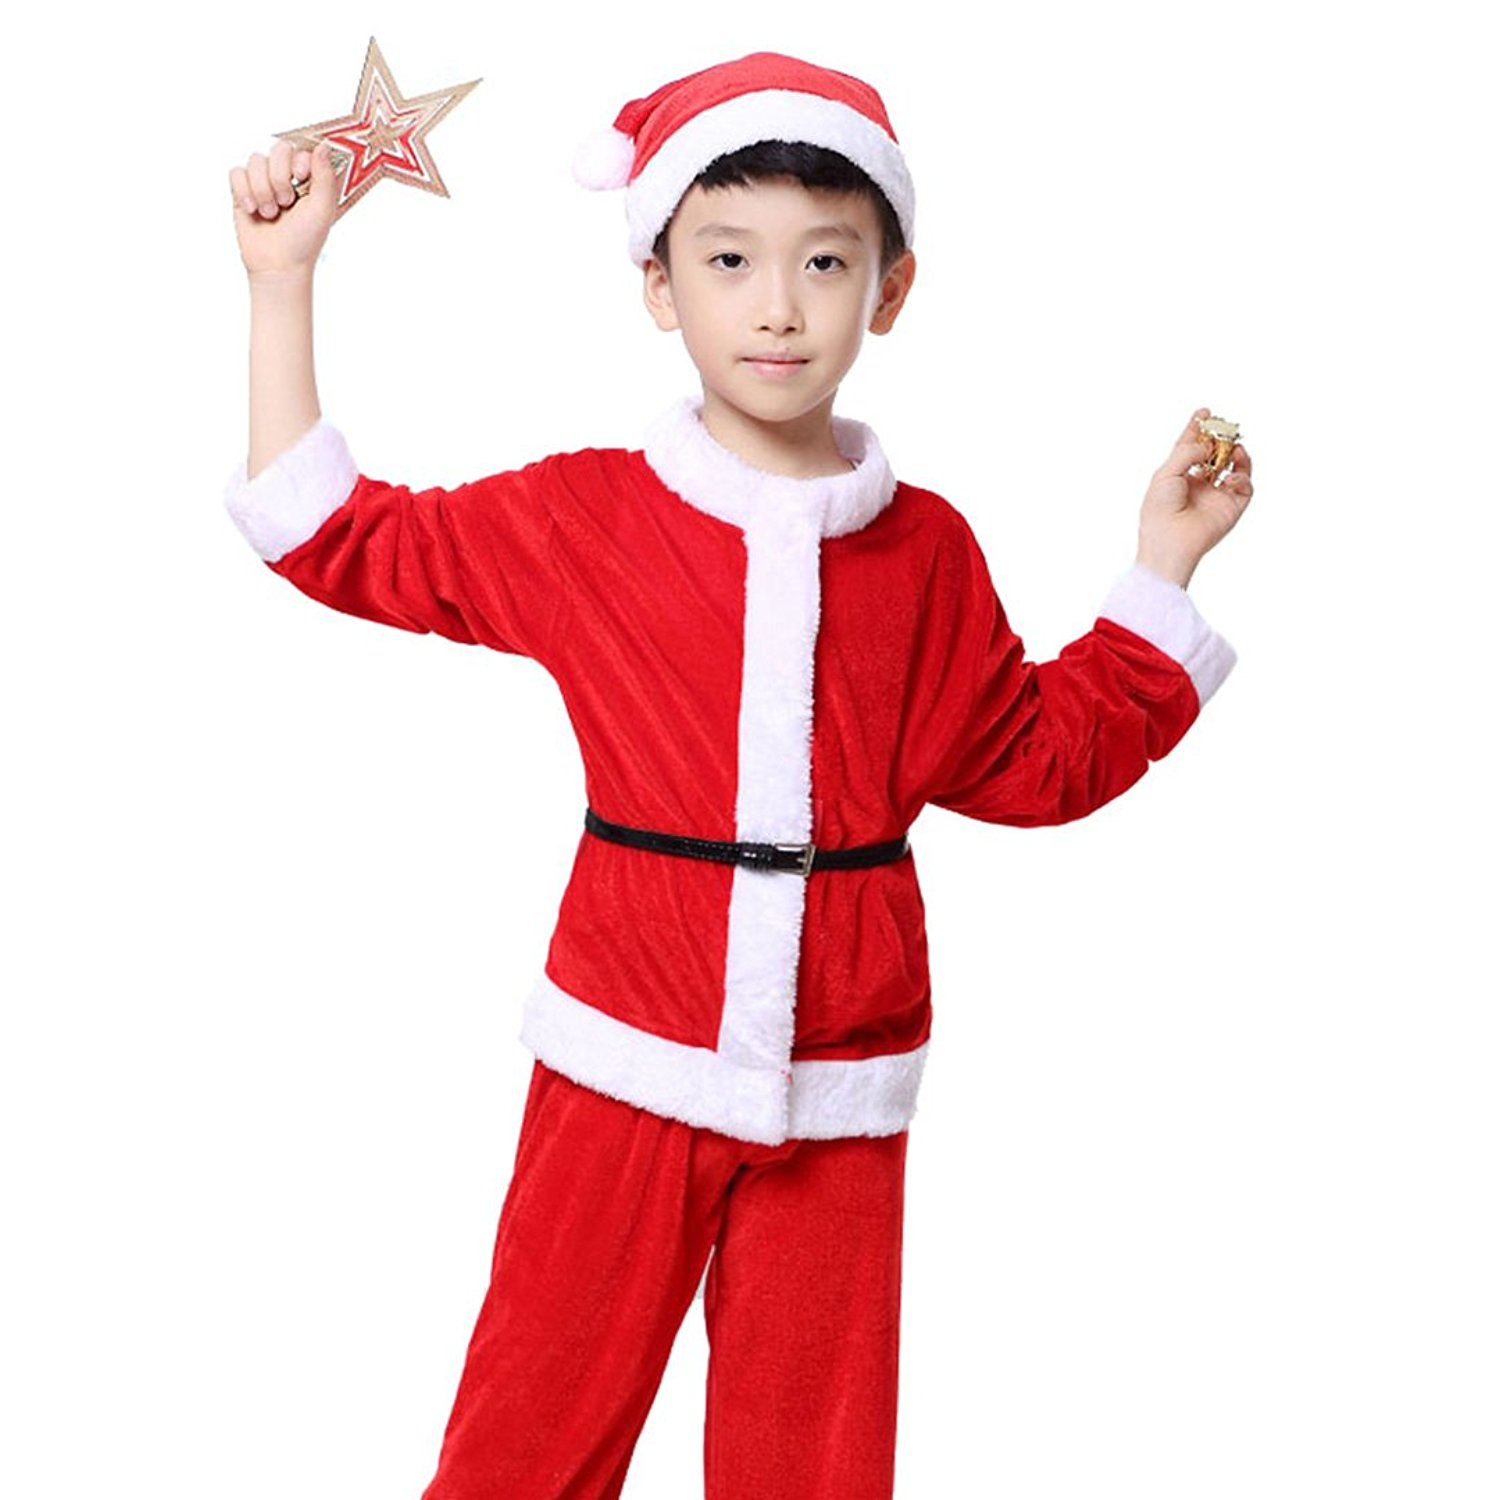 26bedde3d Get Quotations · Multifit Kids Christmas Santa Costume Toddler Santa Claus Costume  Suit with Hat